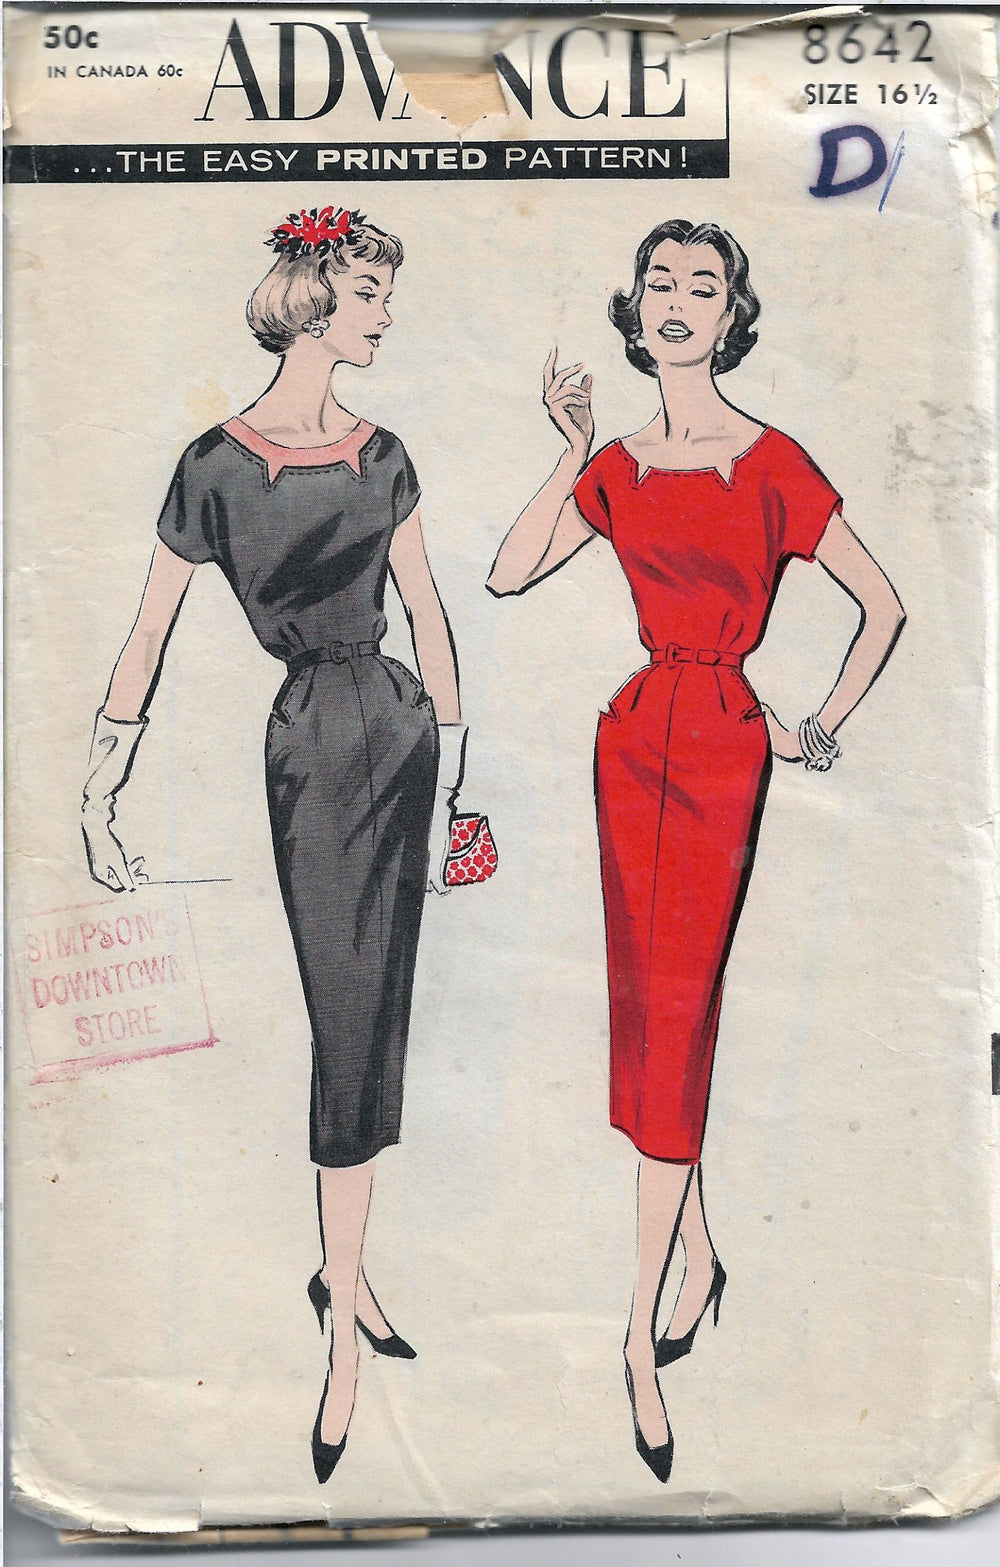 advance 8642 ladies dress vintage pattern 1950s